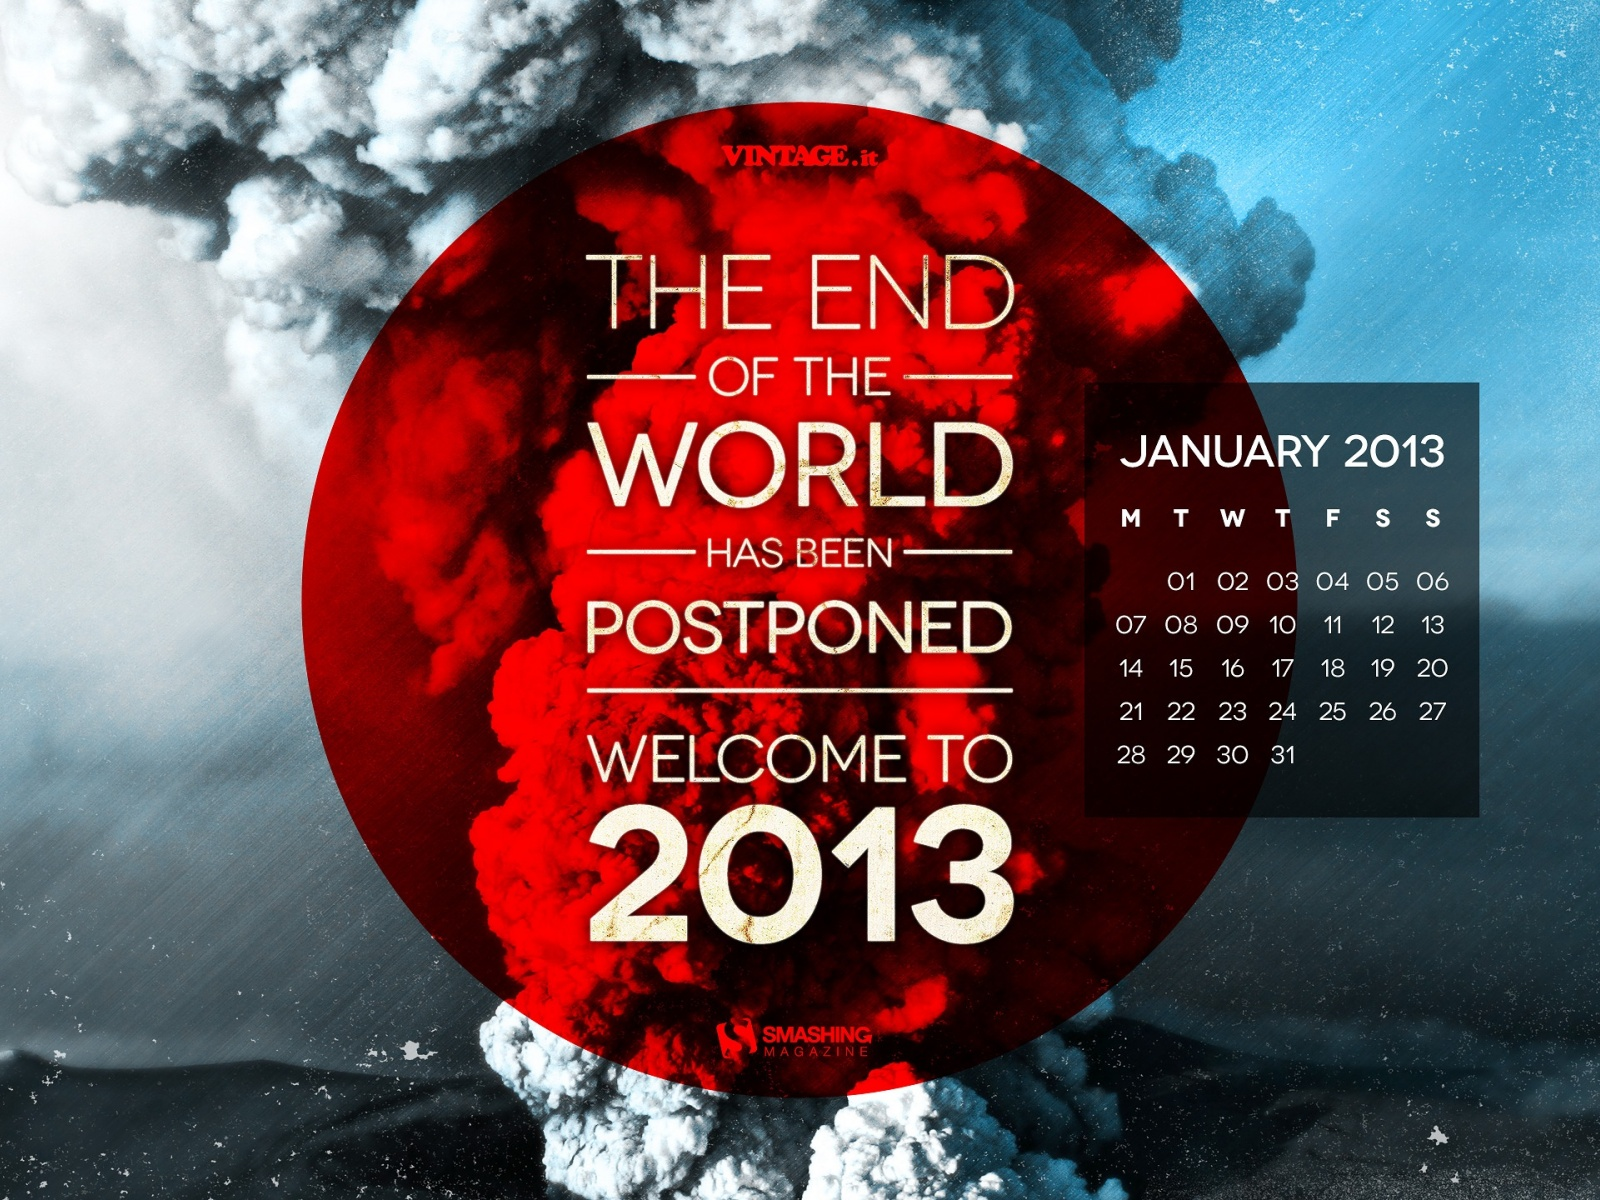 1600x1200 End Of The World Postponed